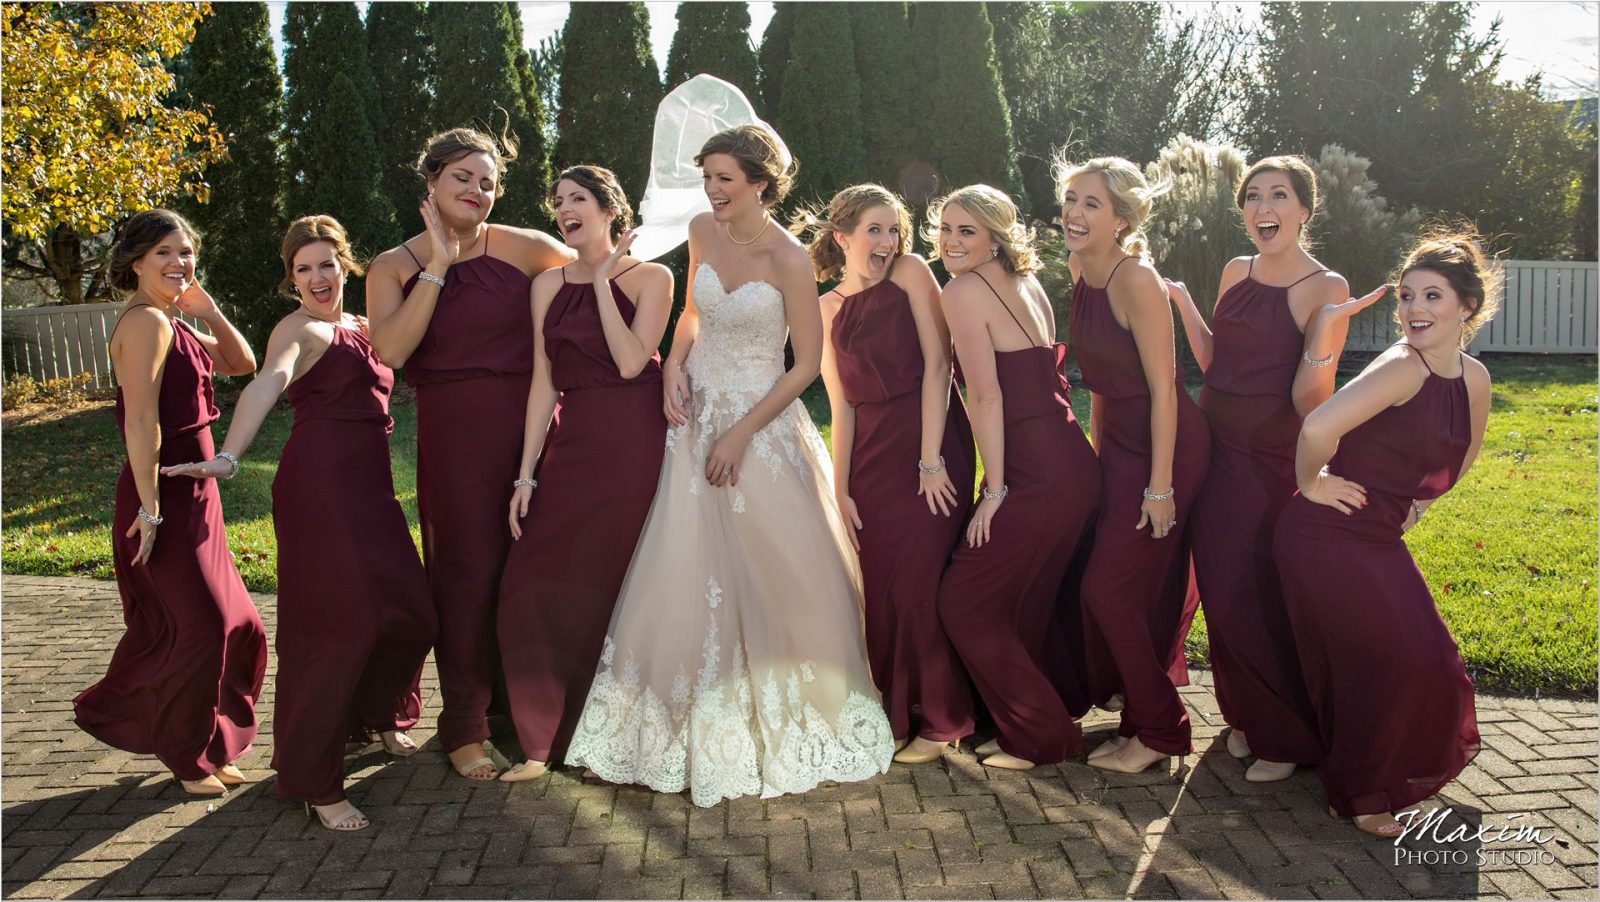 Bride bridesmaids wedding day picture